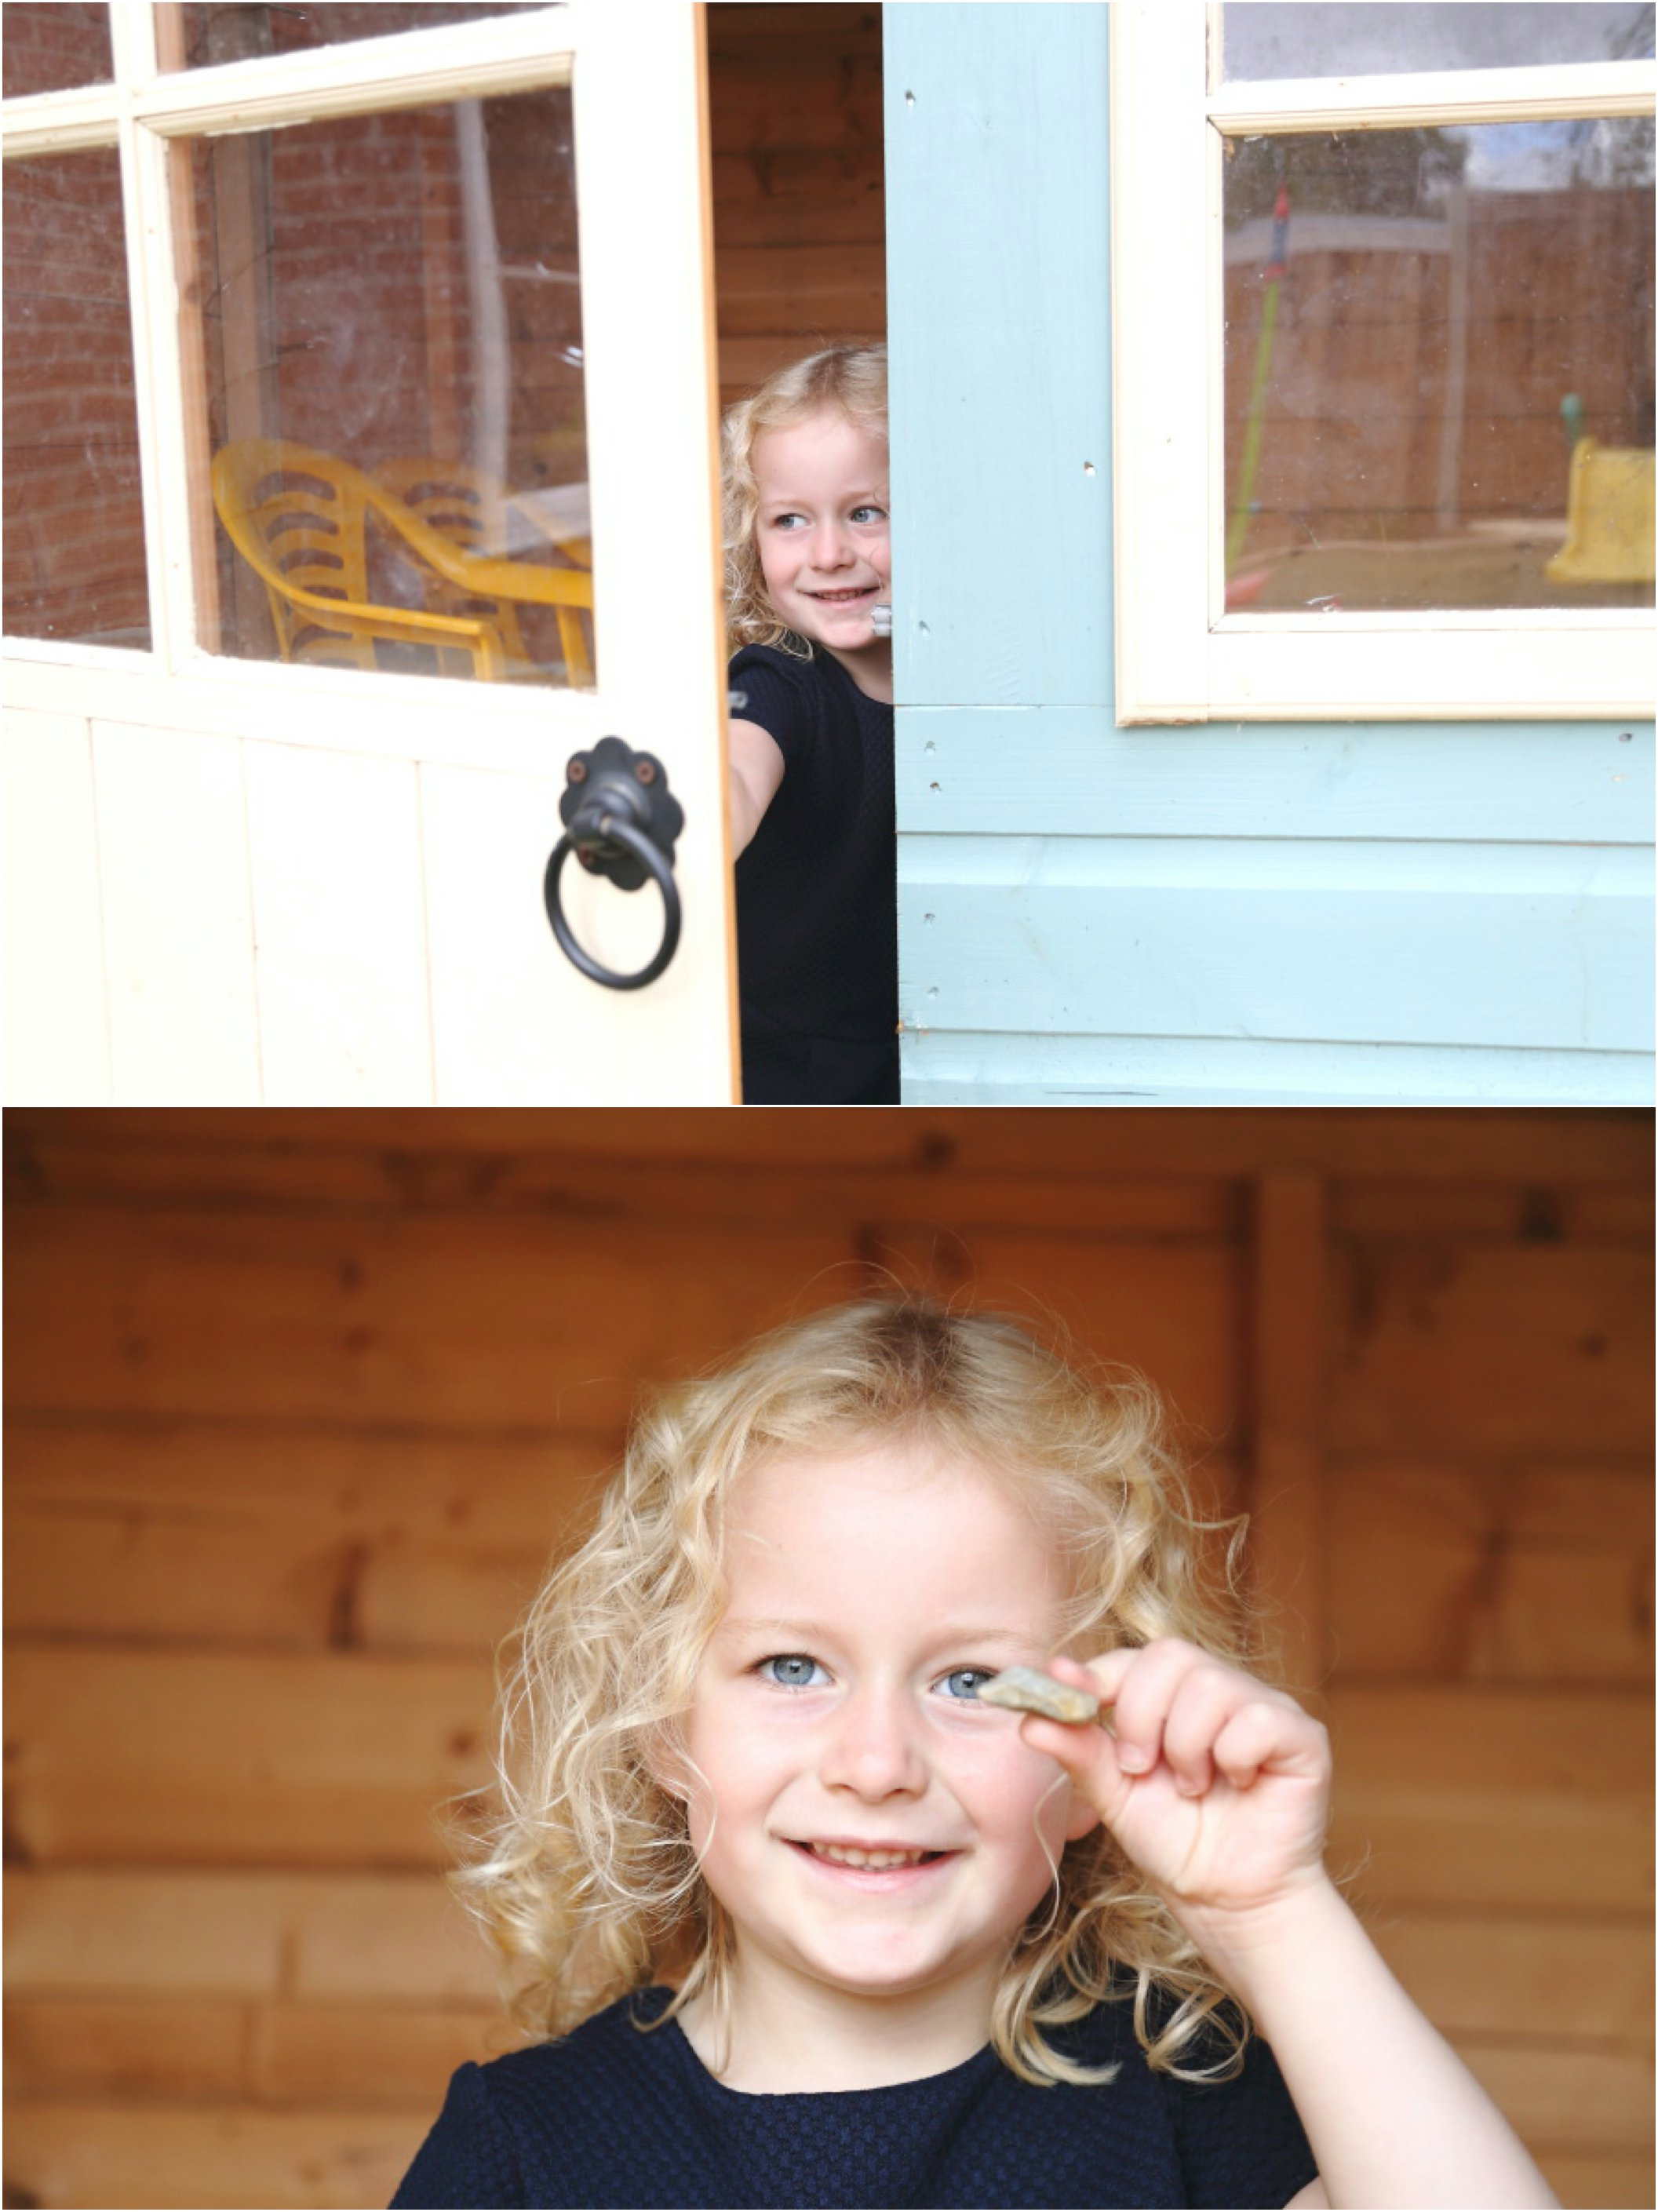 peeking out of the playhouse at family photography session in Kedington, Suffolk